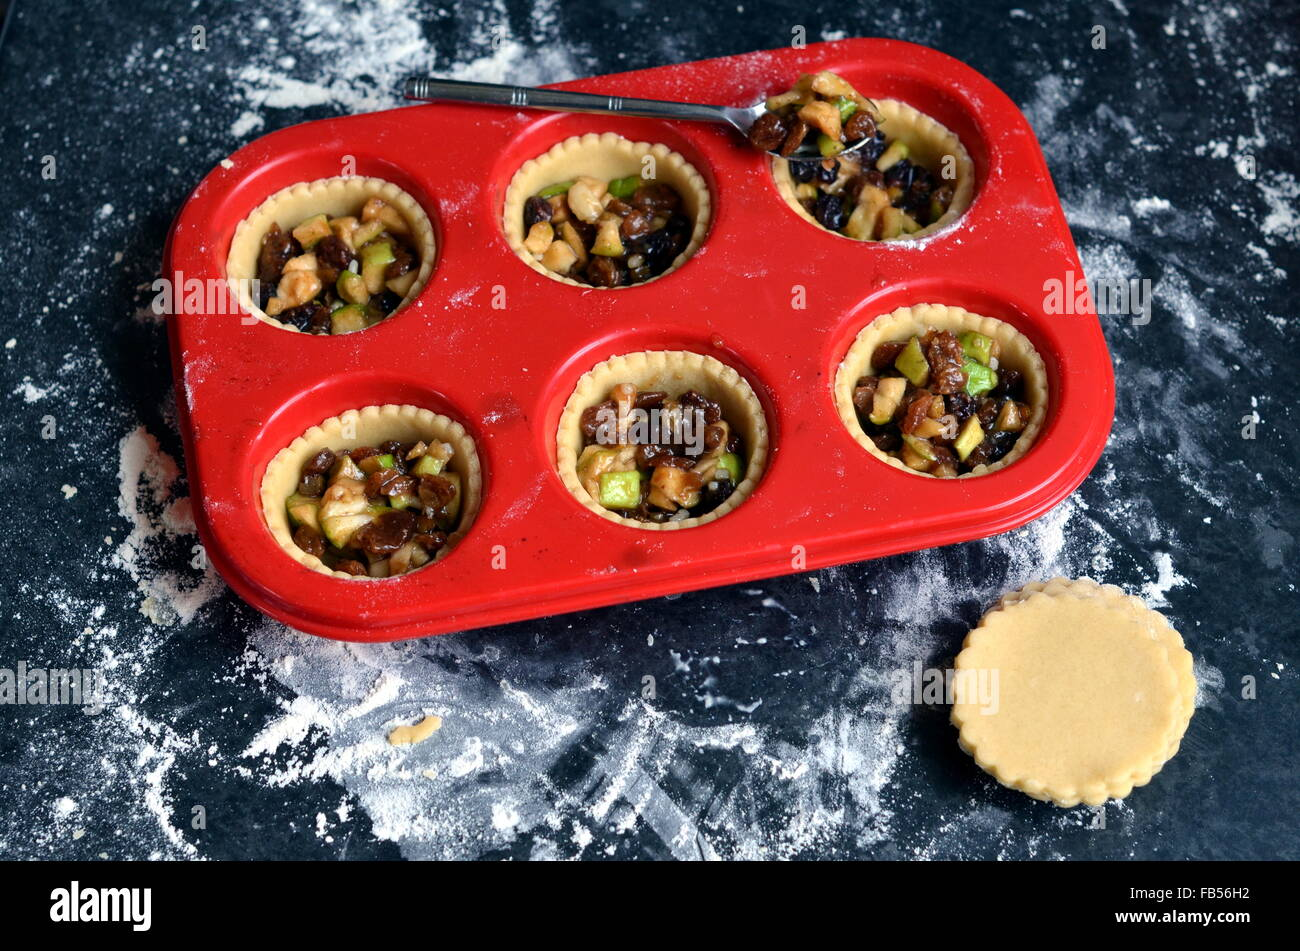 Red silicone muffin tray with unbaked open apple and mince pies on a dark floured surface - Stock Image